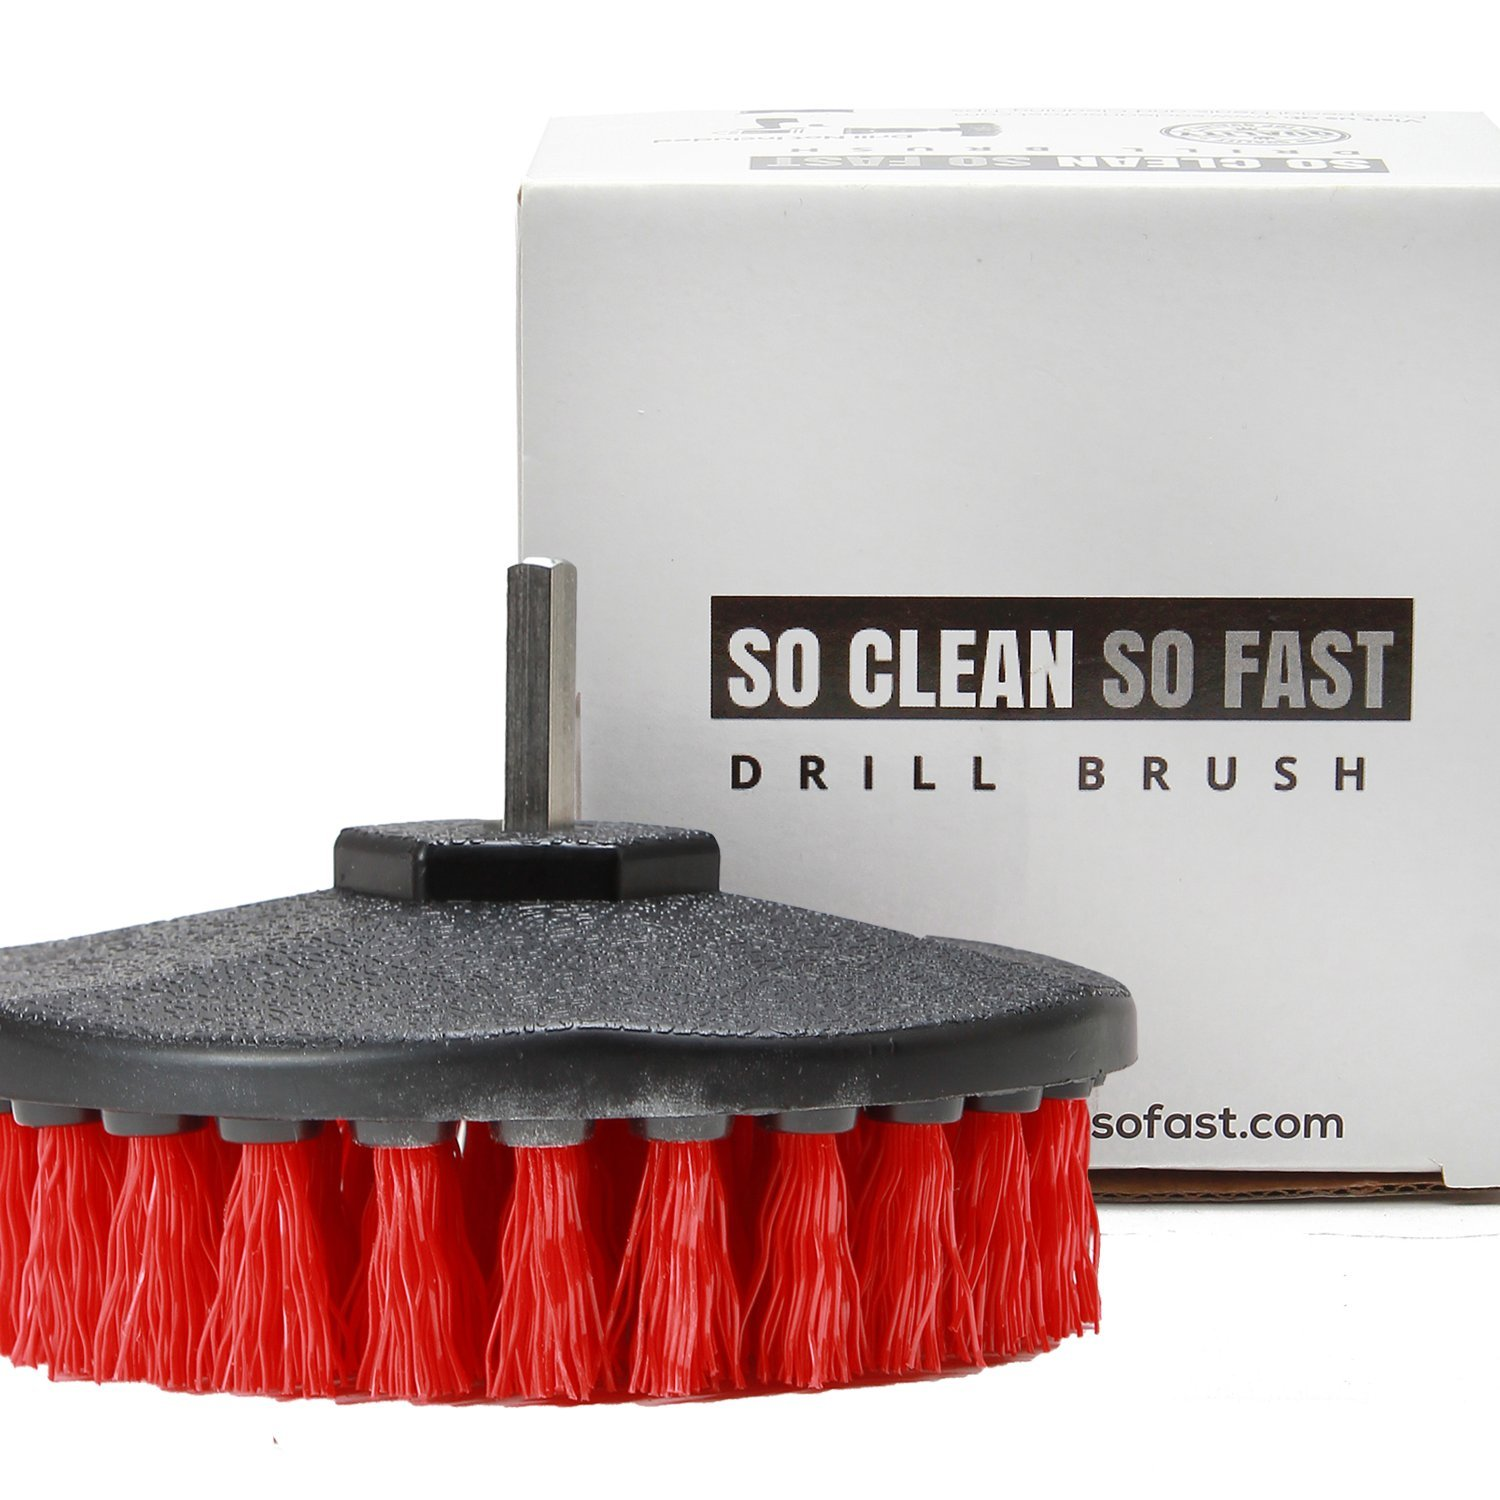 Spin Away Rust Clean Tile /& Grout 5X Faster 5 Diameter Stiff Red Nylon Bristle with Metal Shaft Attachment So Clean So Fast Drill Brush Heavy Duty Soap Scum Hard Water Stain Mineral Deposit